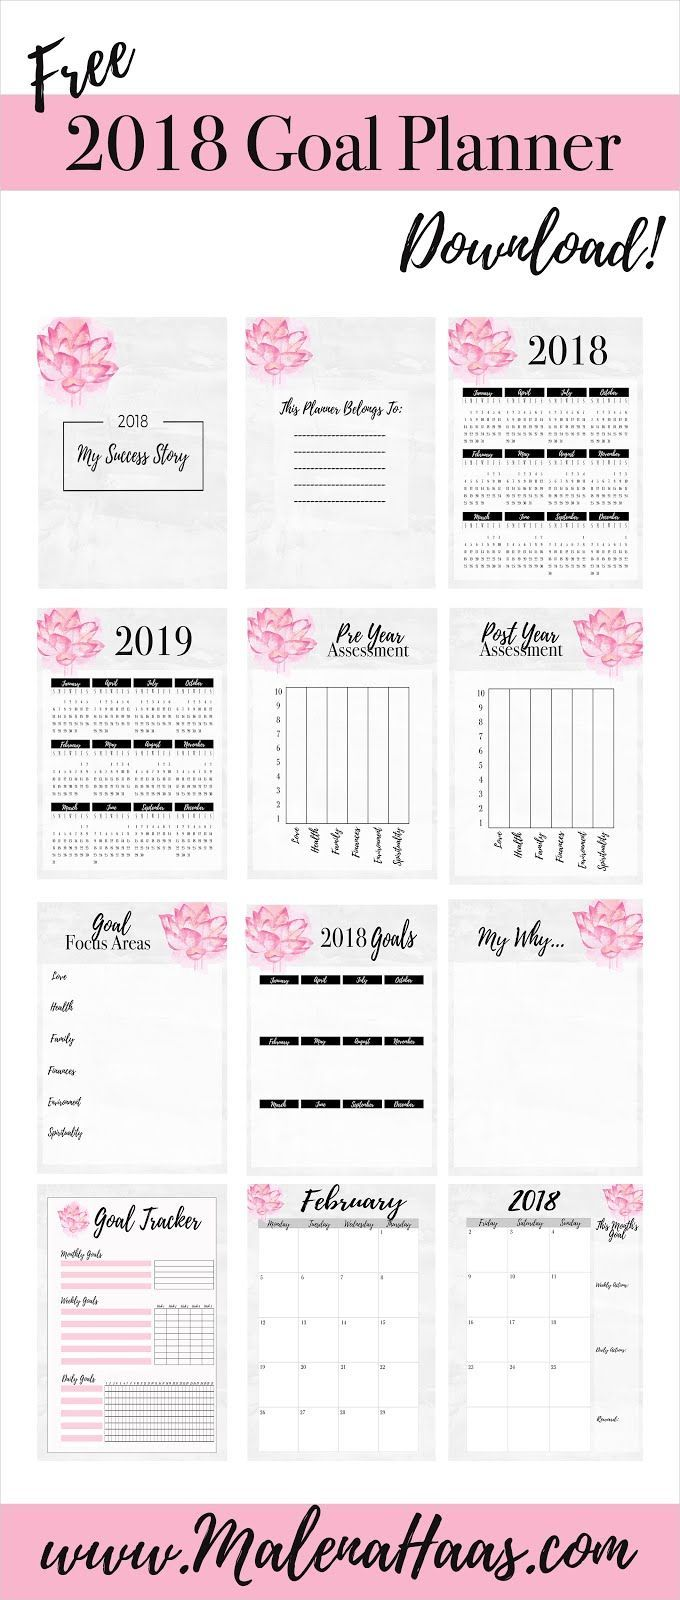 Ultimate 2018 Goal Planning Inserts For Planner Download in Pink and Grey